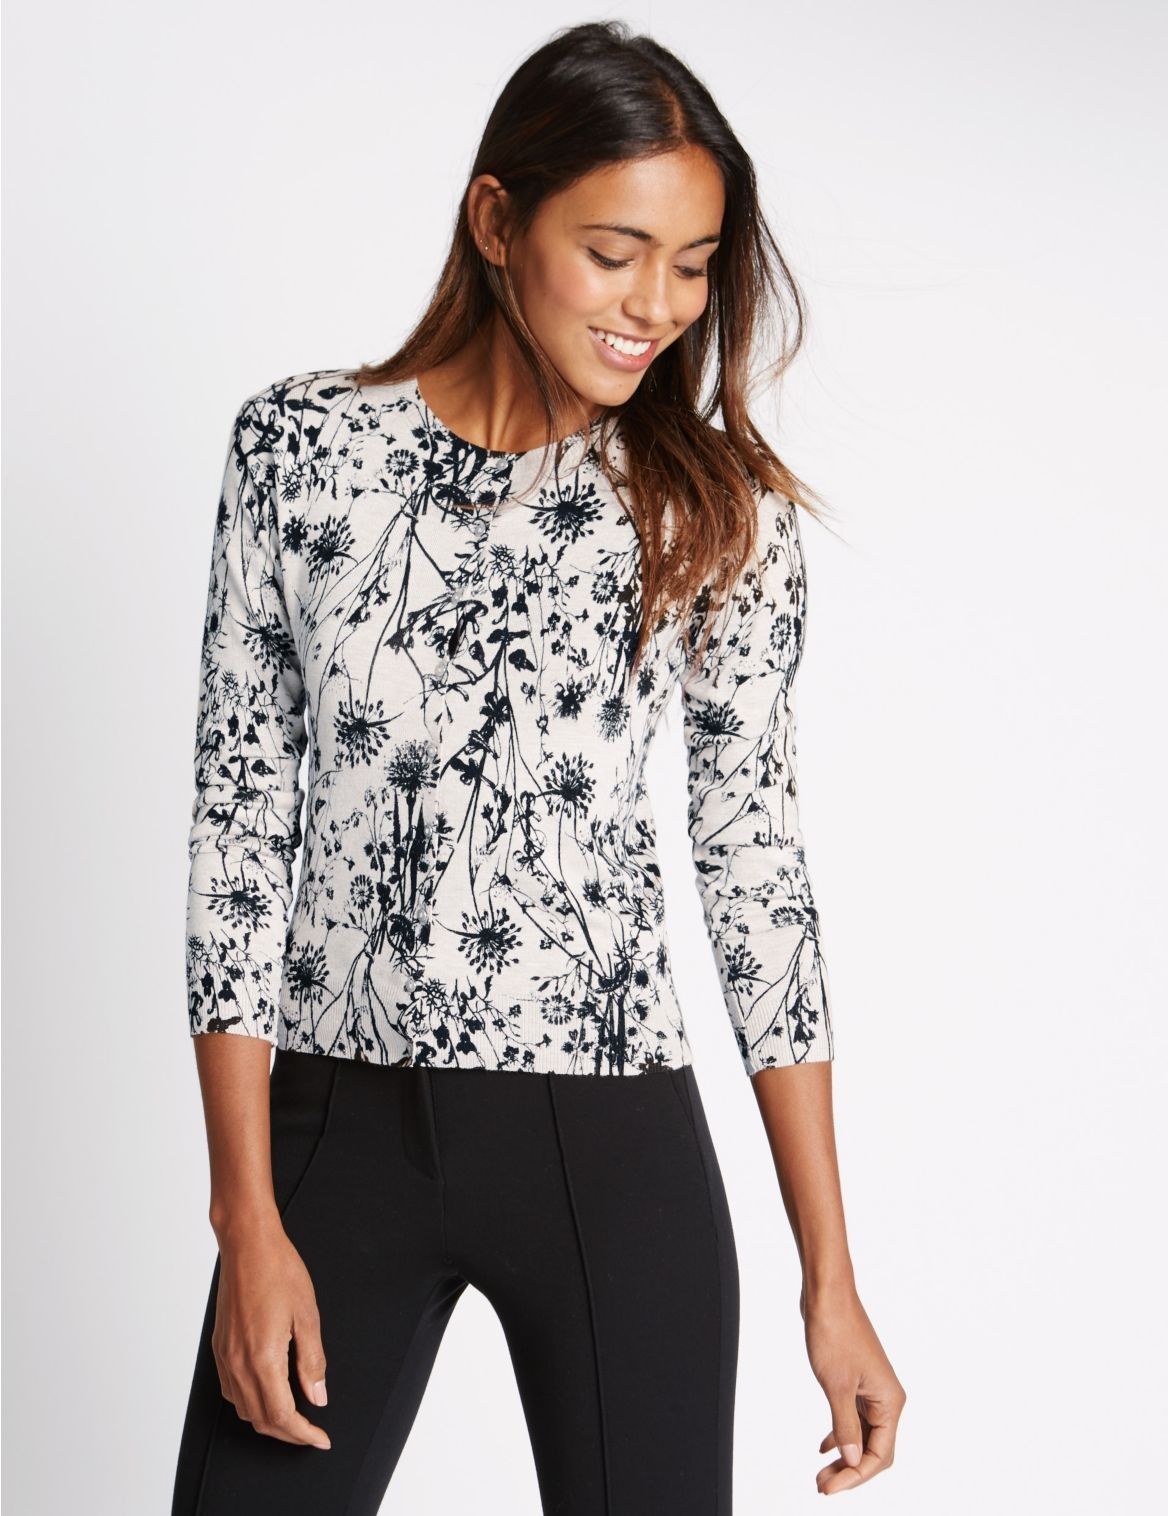 Why Every Girl Needs a Black and White Floral Print Cardigan ...